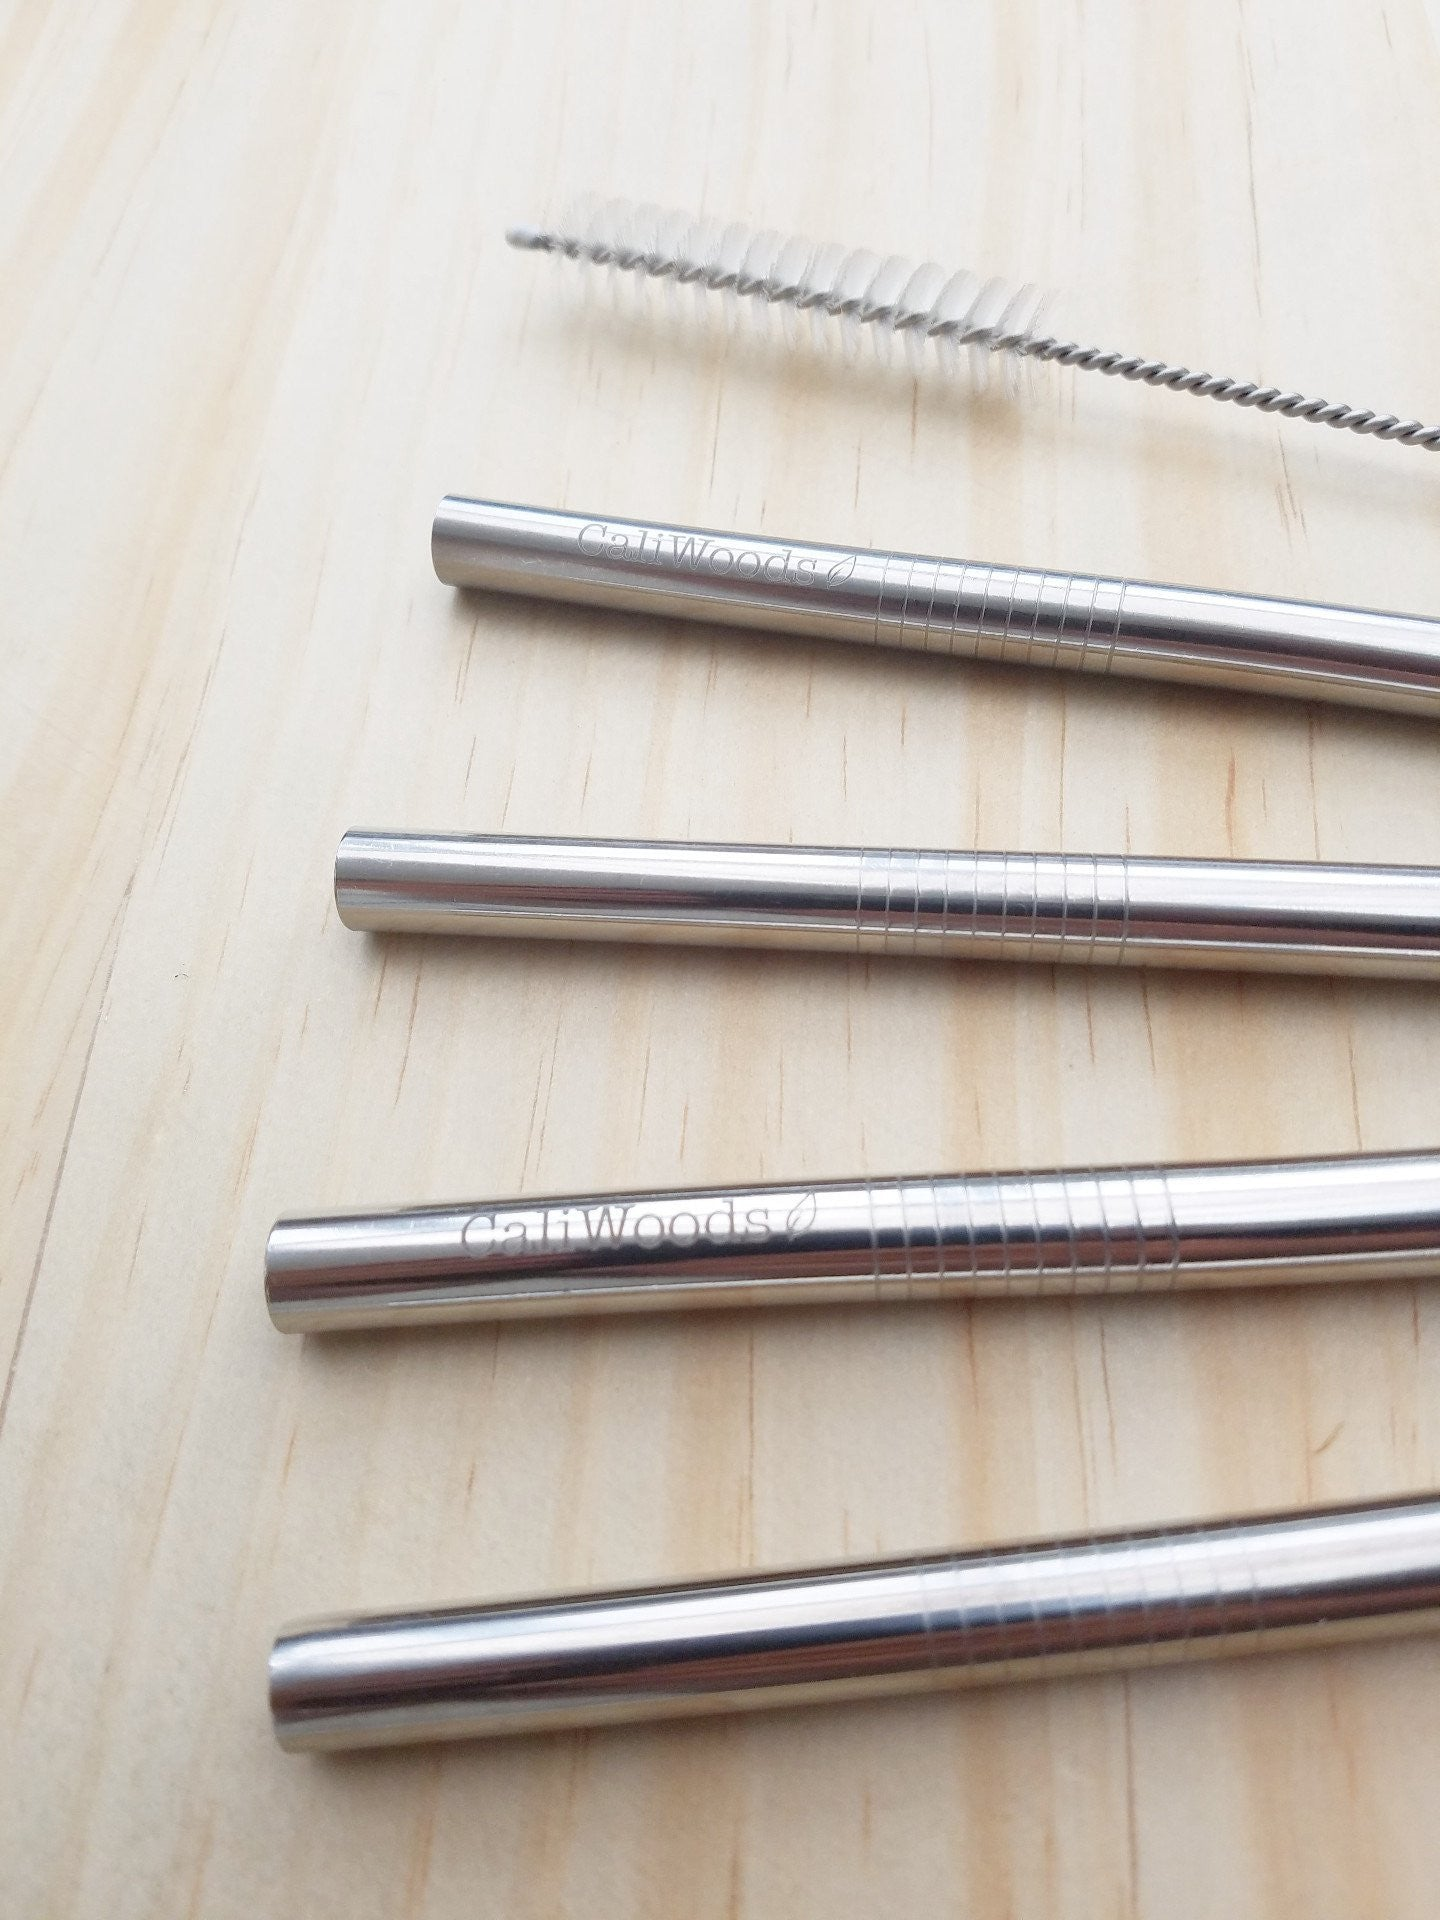 Stainless Steel Drinking Straw - Smoothie Straw - Caliwoods - Reusable Straws - NZ - Mt Maunganui Stockist